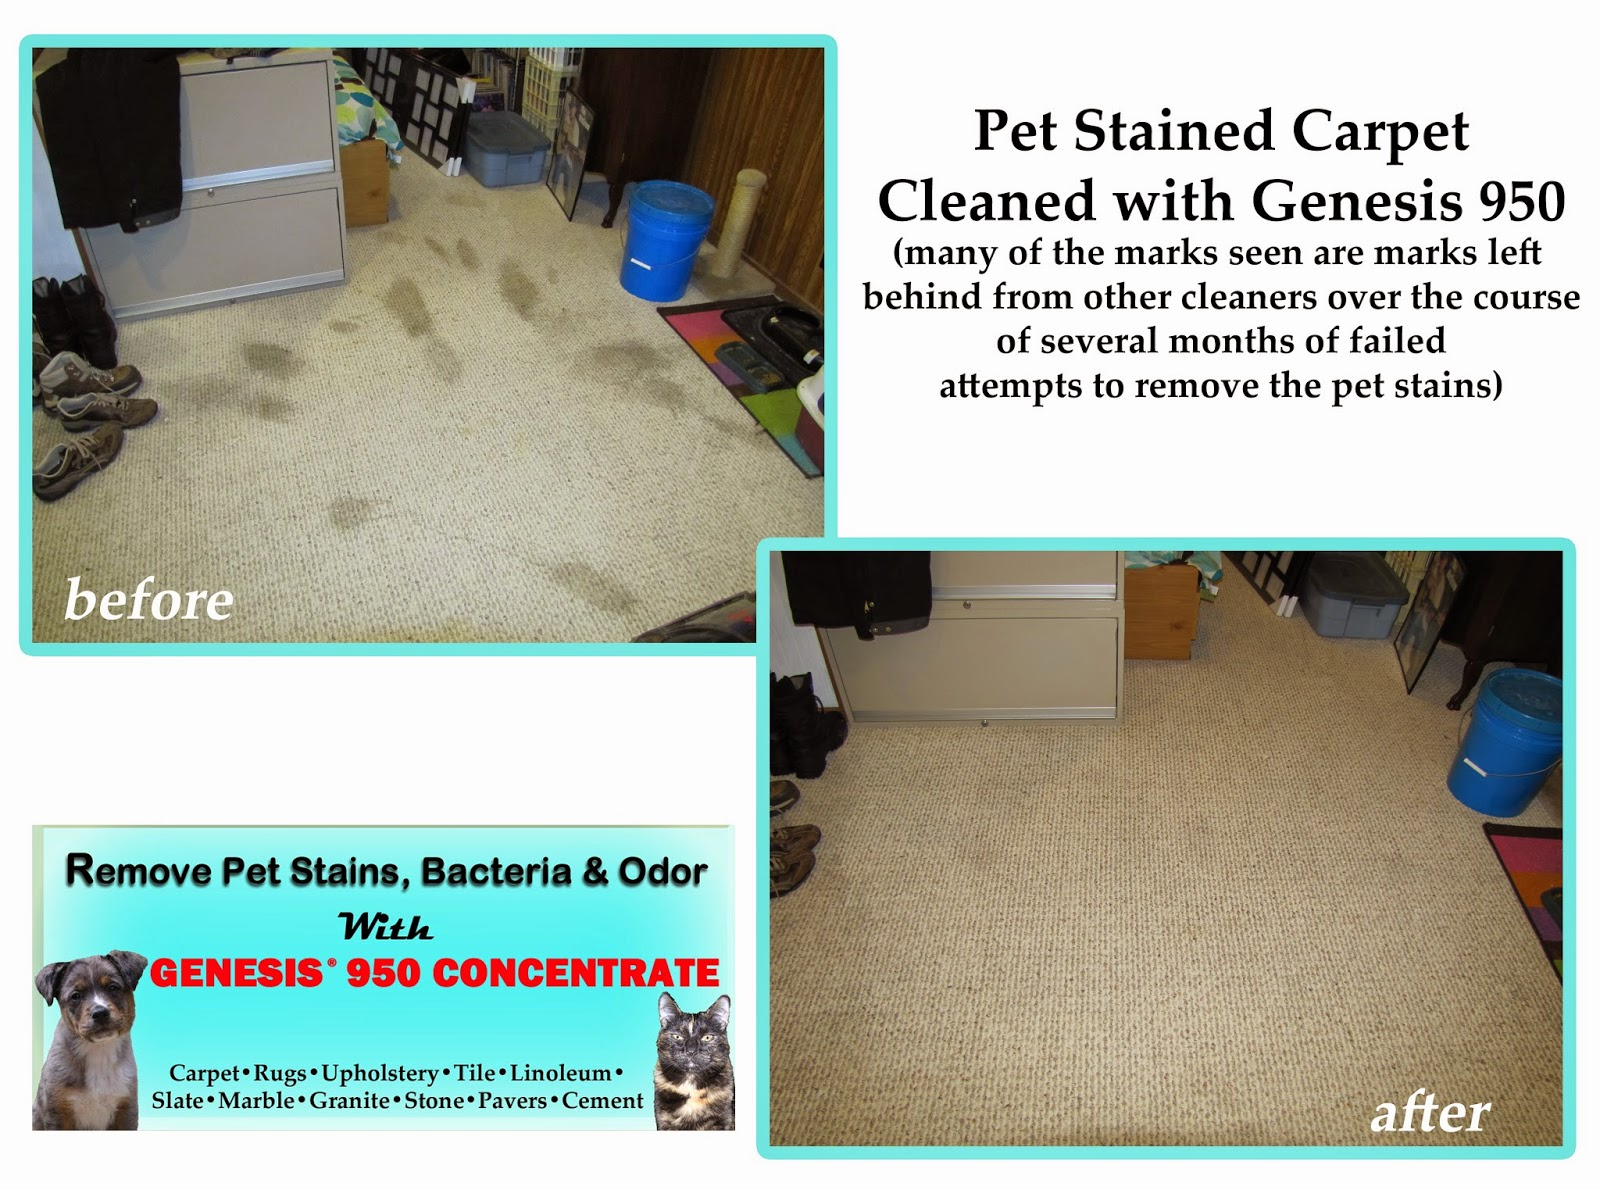 Remove Pet Stains From Carpet Black Friday 2015 Genesis 950